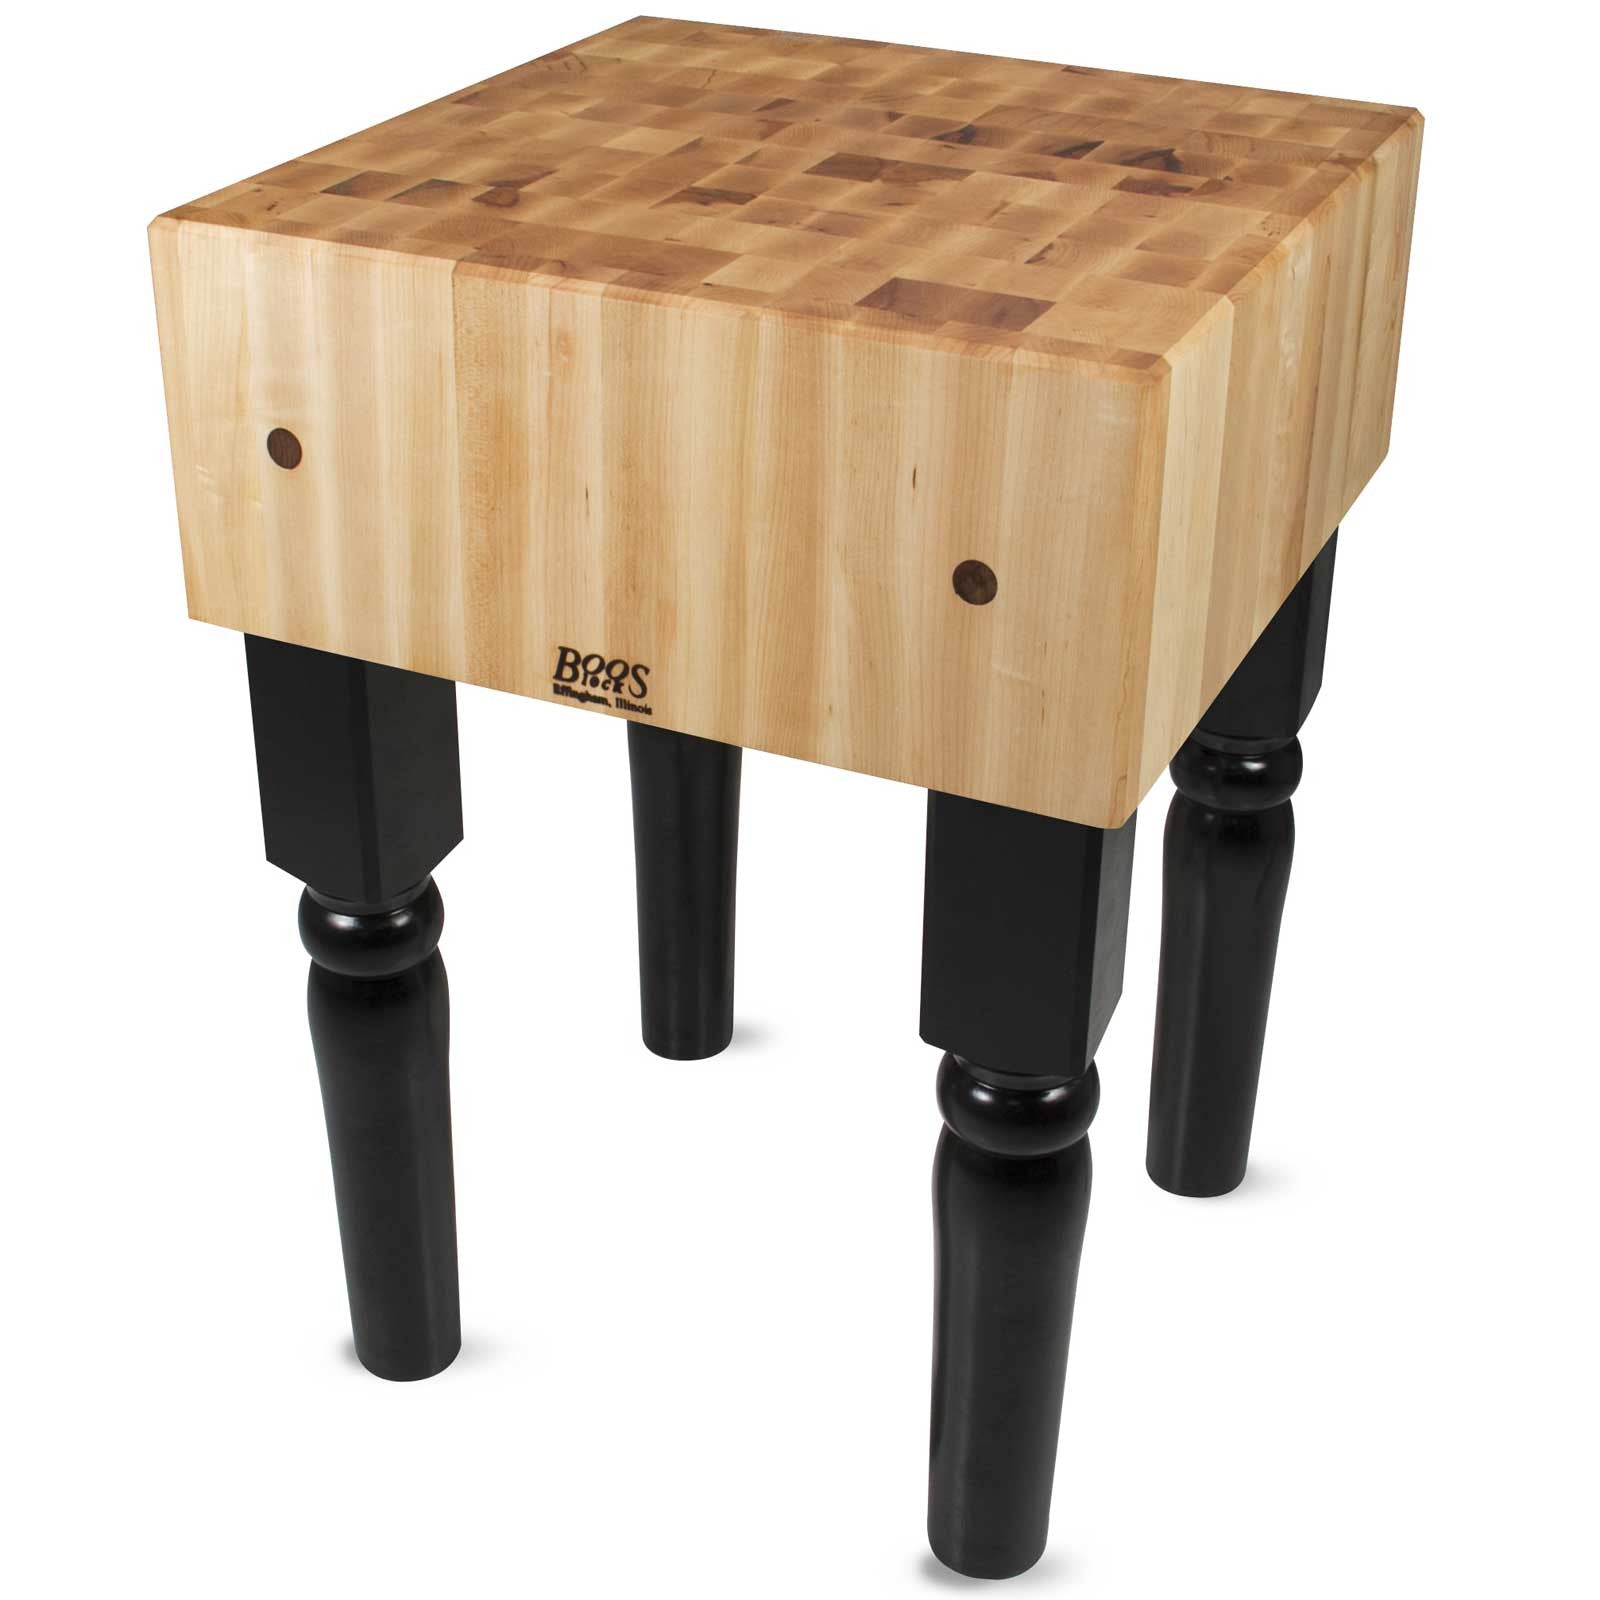 "John Boos 24"" x 18"" x 10"" Maple Top AB Butcher Block"